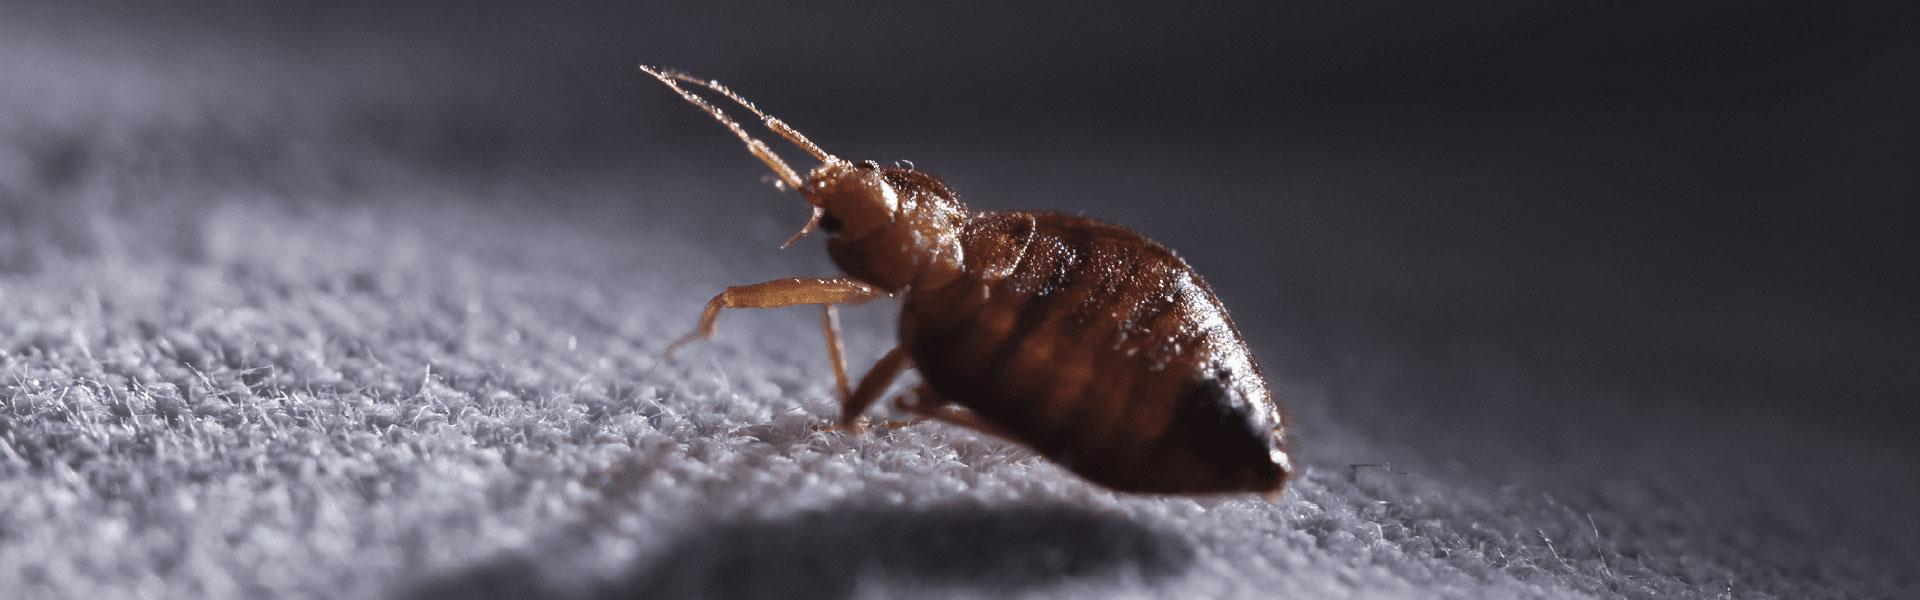 Heat kills bed bugs quickly and effectively